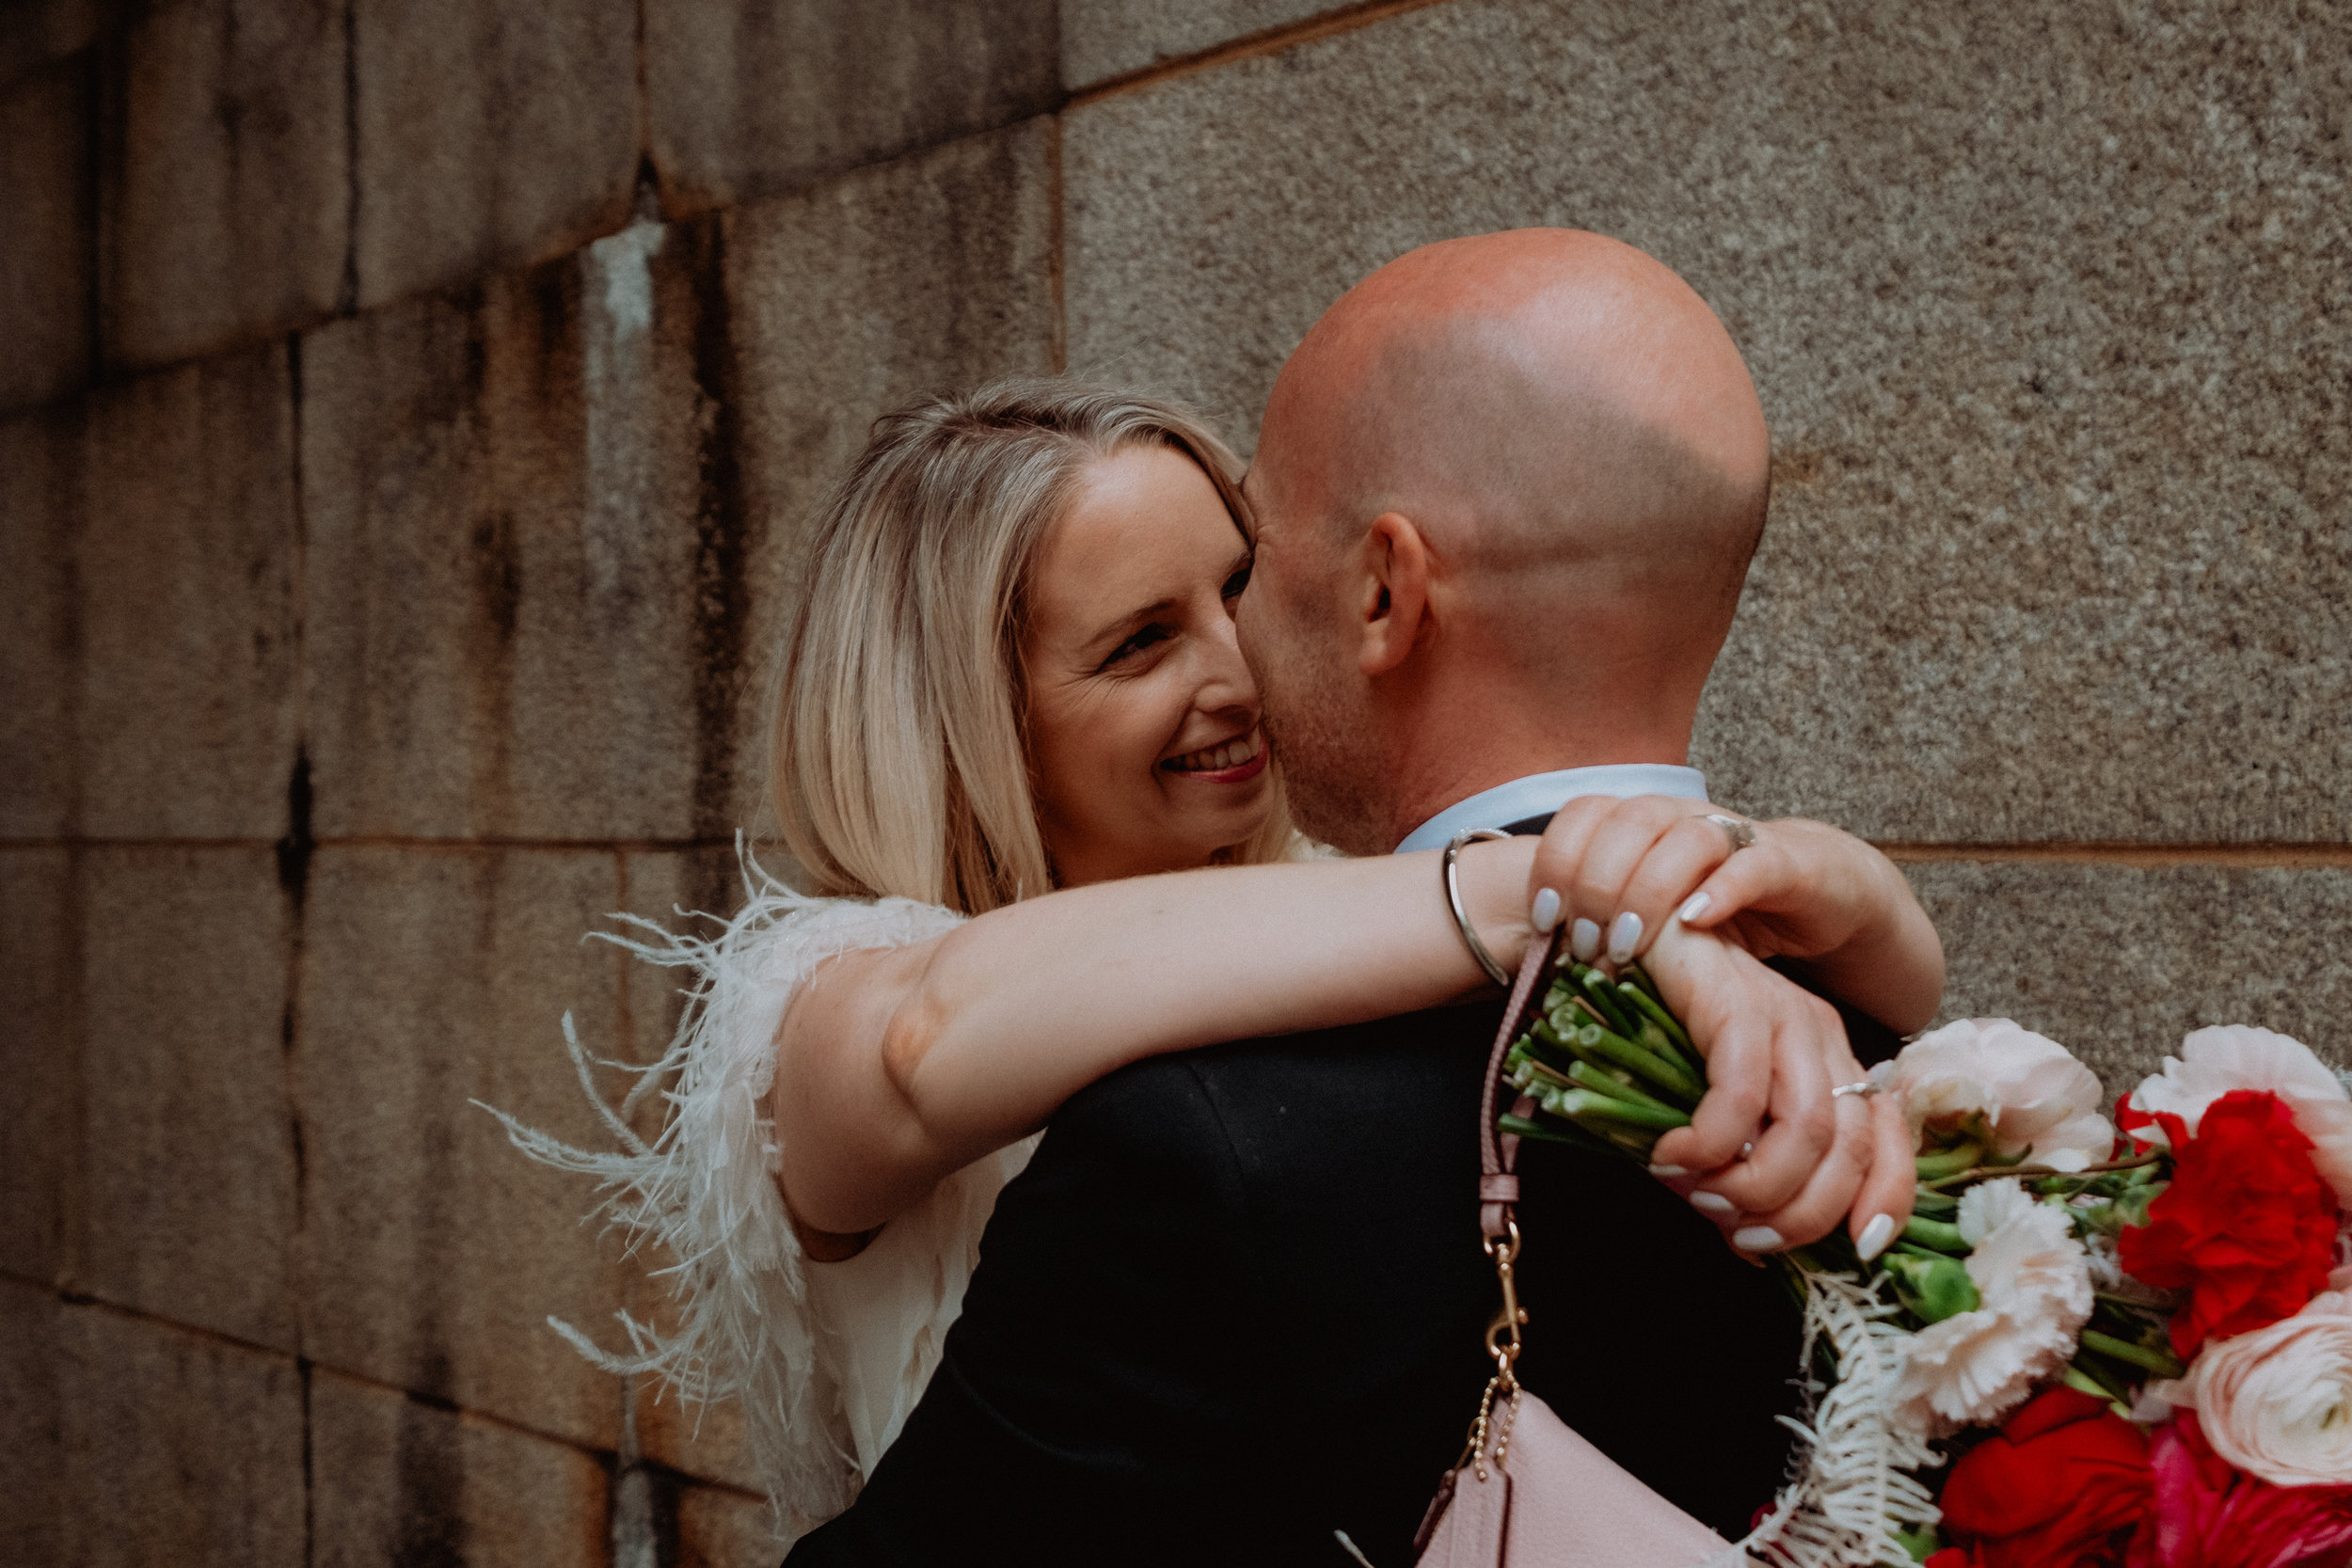 Brooklyn_City_Hall_Elopement_Photographer_Chellise_Michael_Photography234.JPG